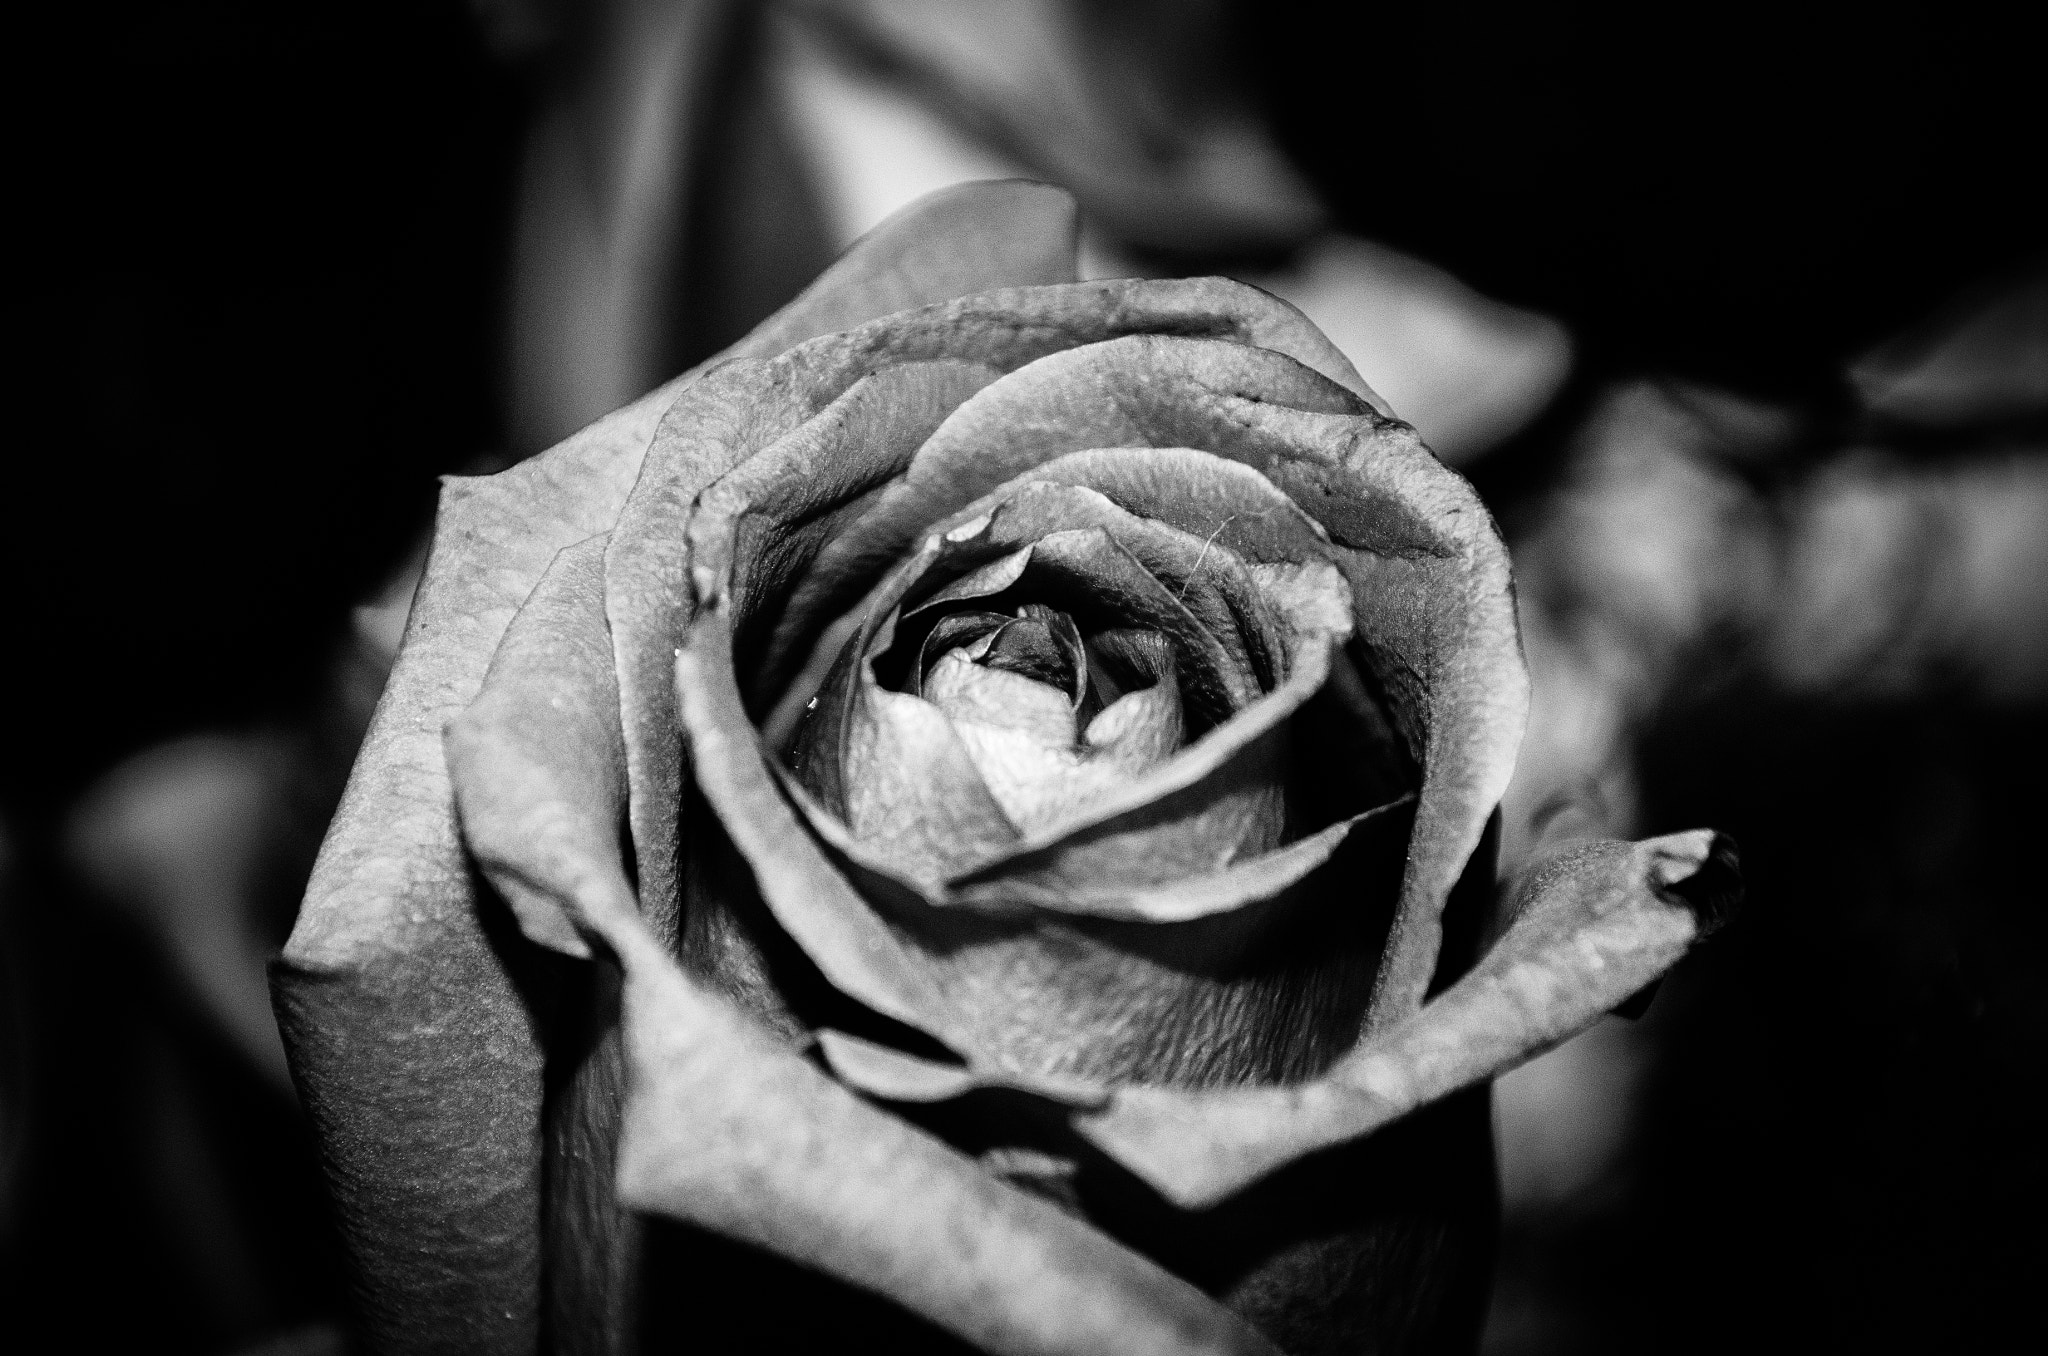 Photograph Black and White Flower by Danny Kooiker on 500px